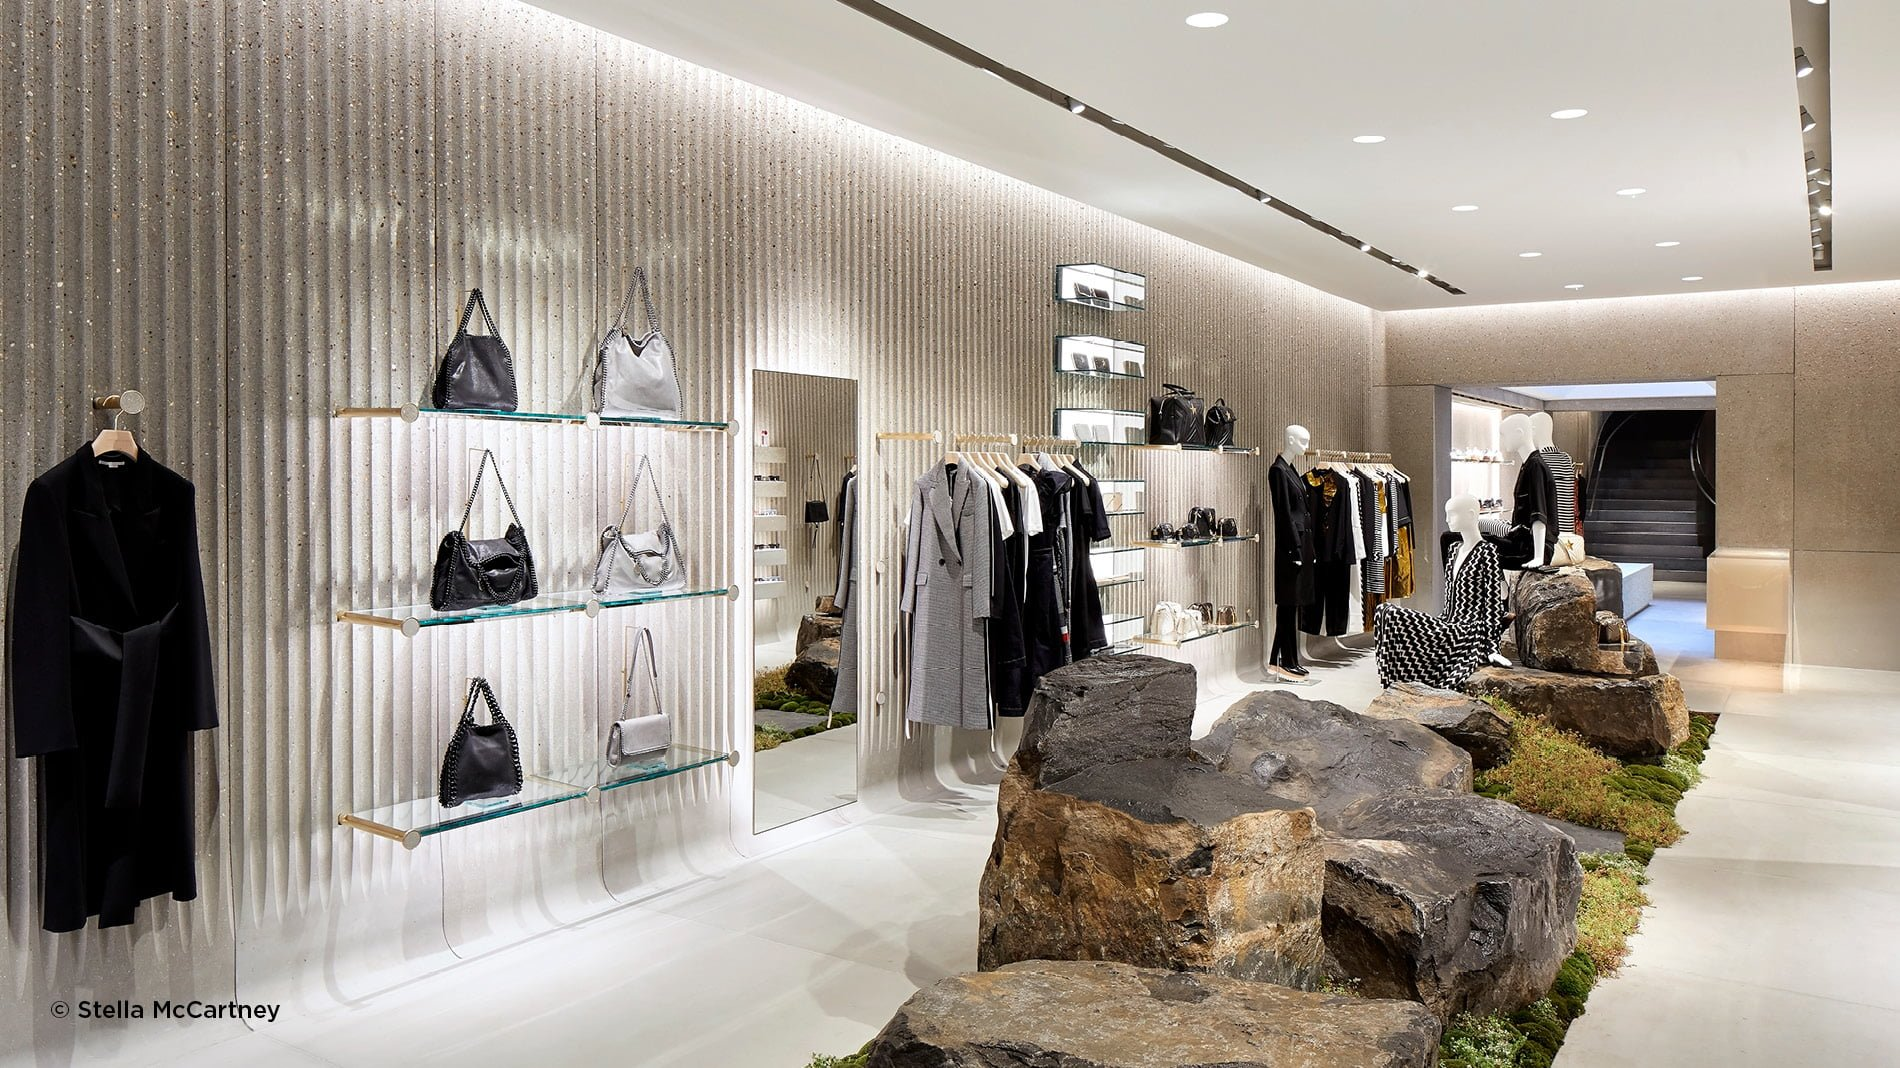 Biophilic design rock centre piece in the new Stella McCartney Old Bond Street Store in London